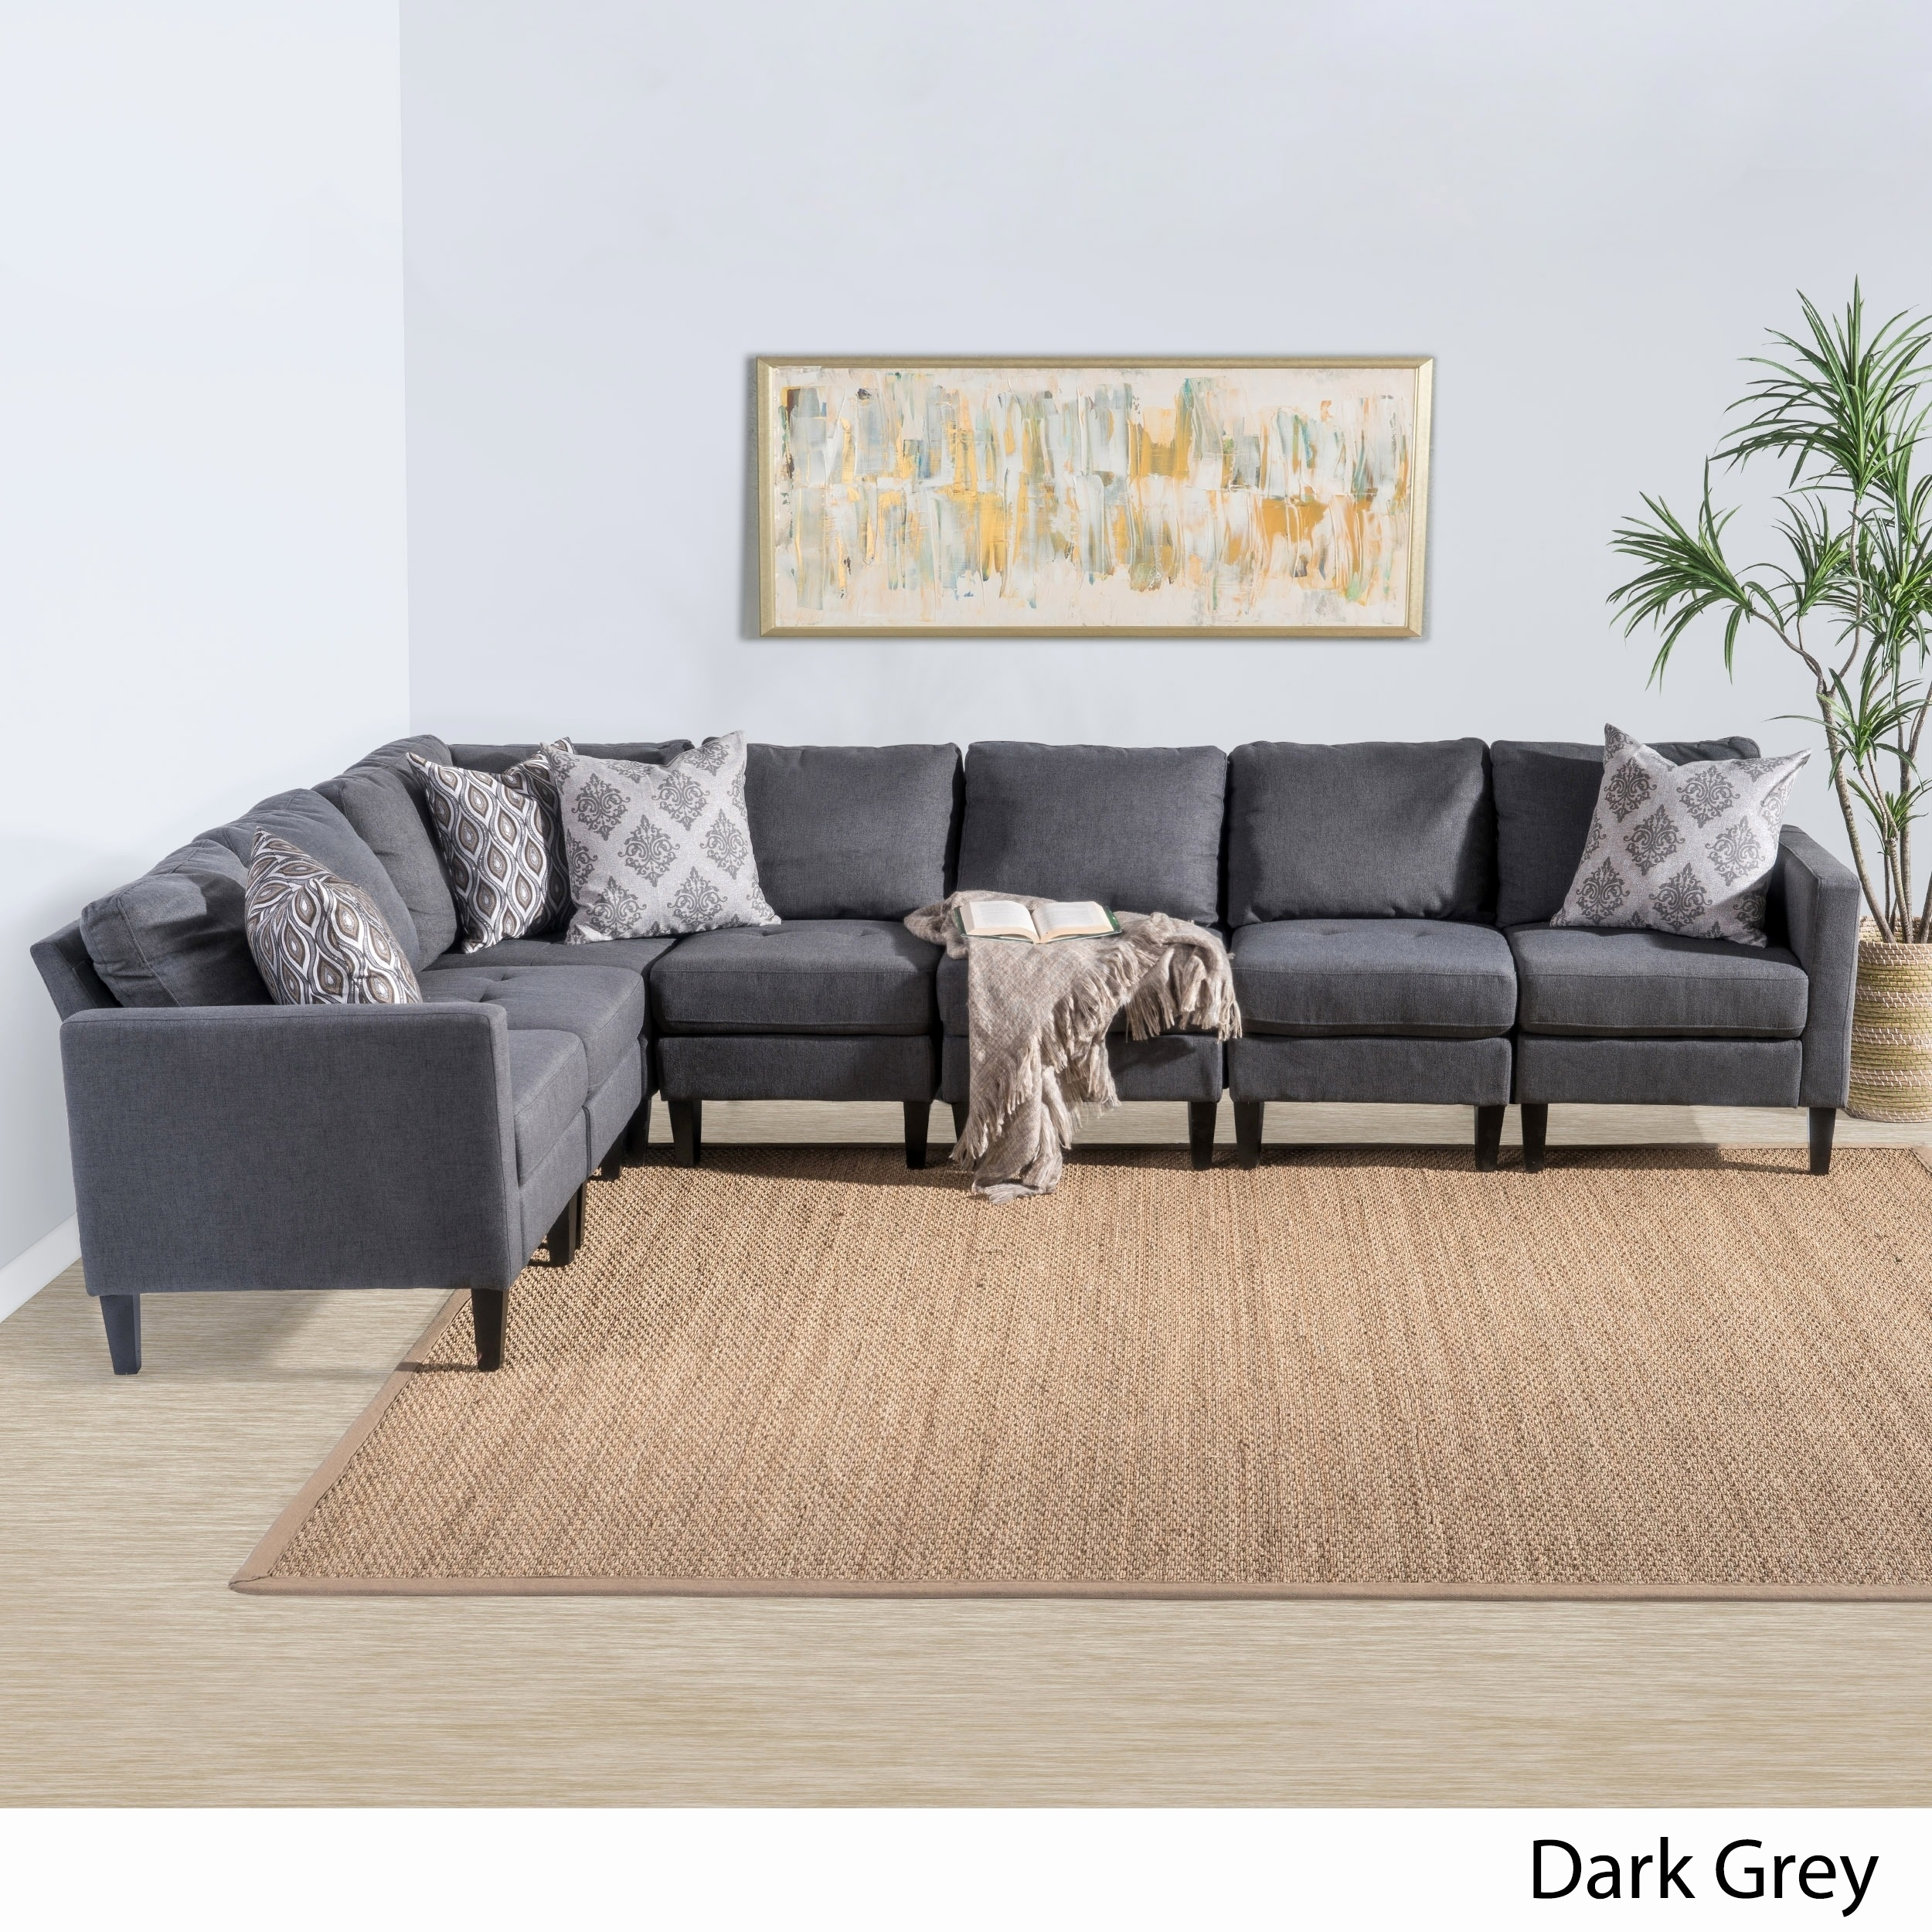 30 Inspirational Sam Club Furniture Pictures (30 Photos) | Home in Sectional Sofas at Sam's Club (Image 1 of 15)